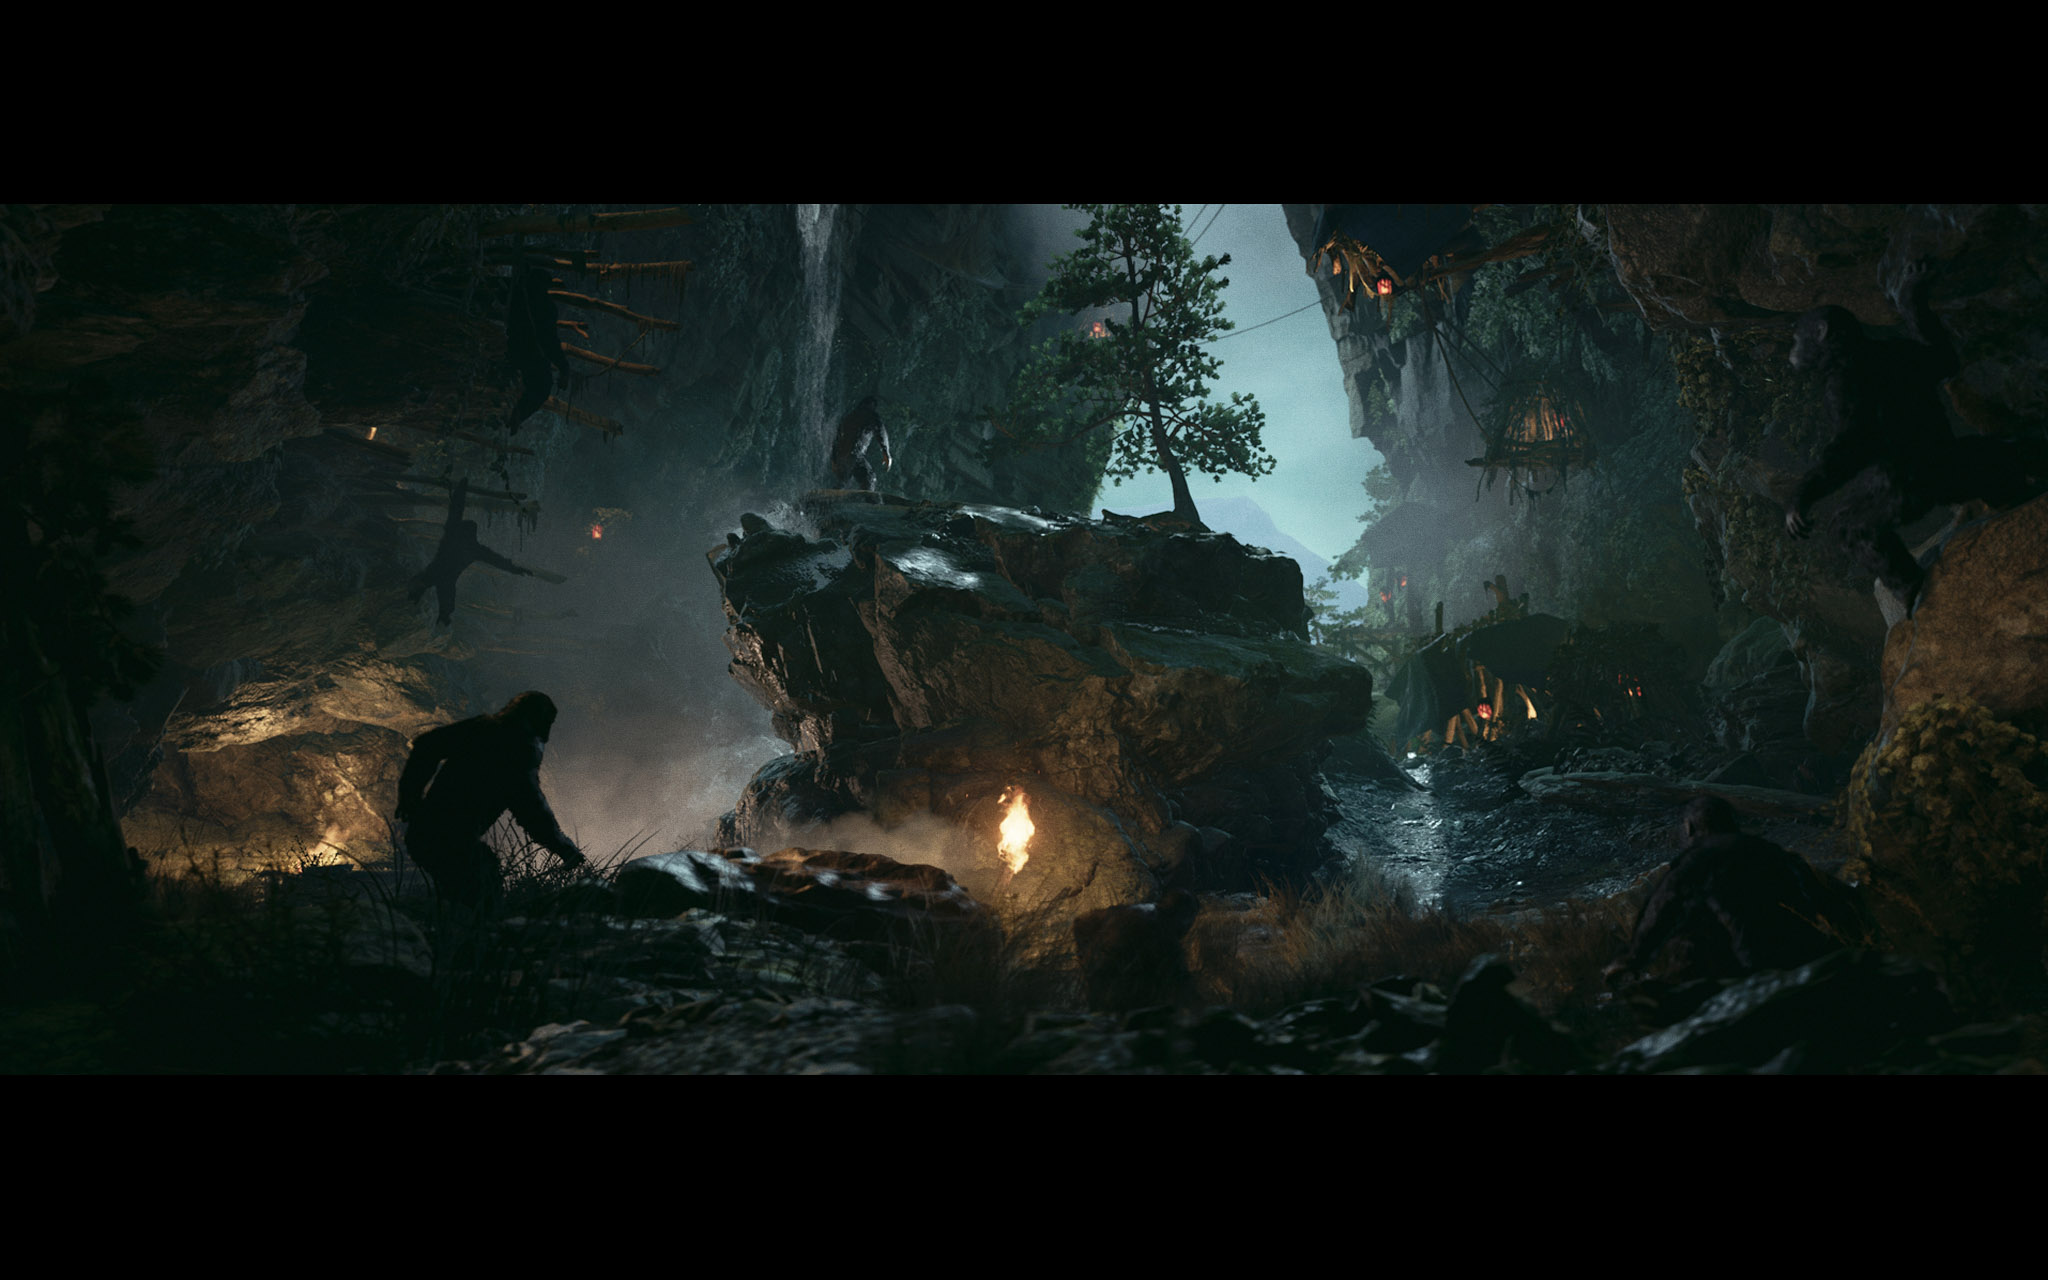 Planet of the Apes: Last Frontier - Caves - The Outerhaven